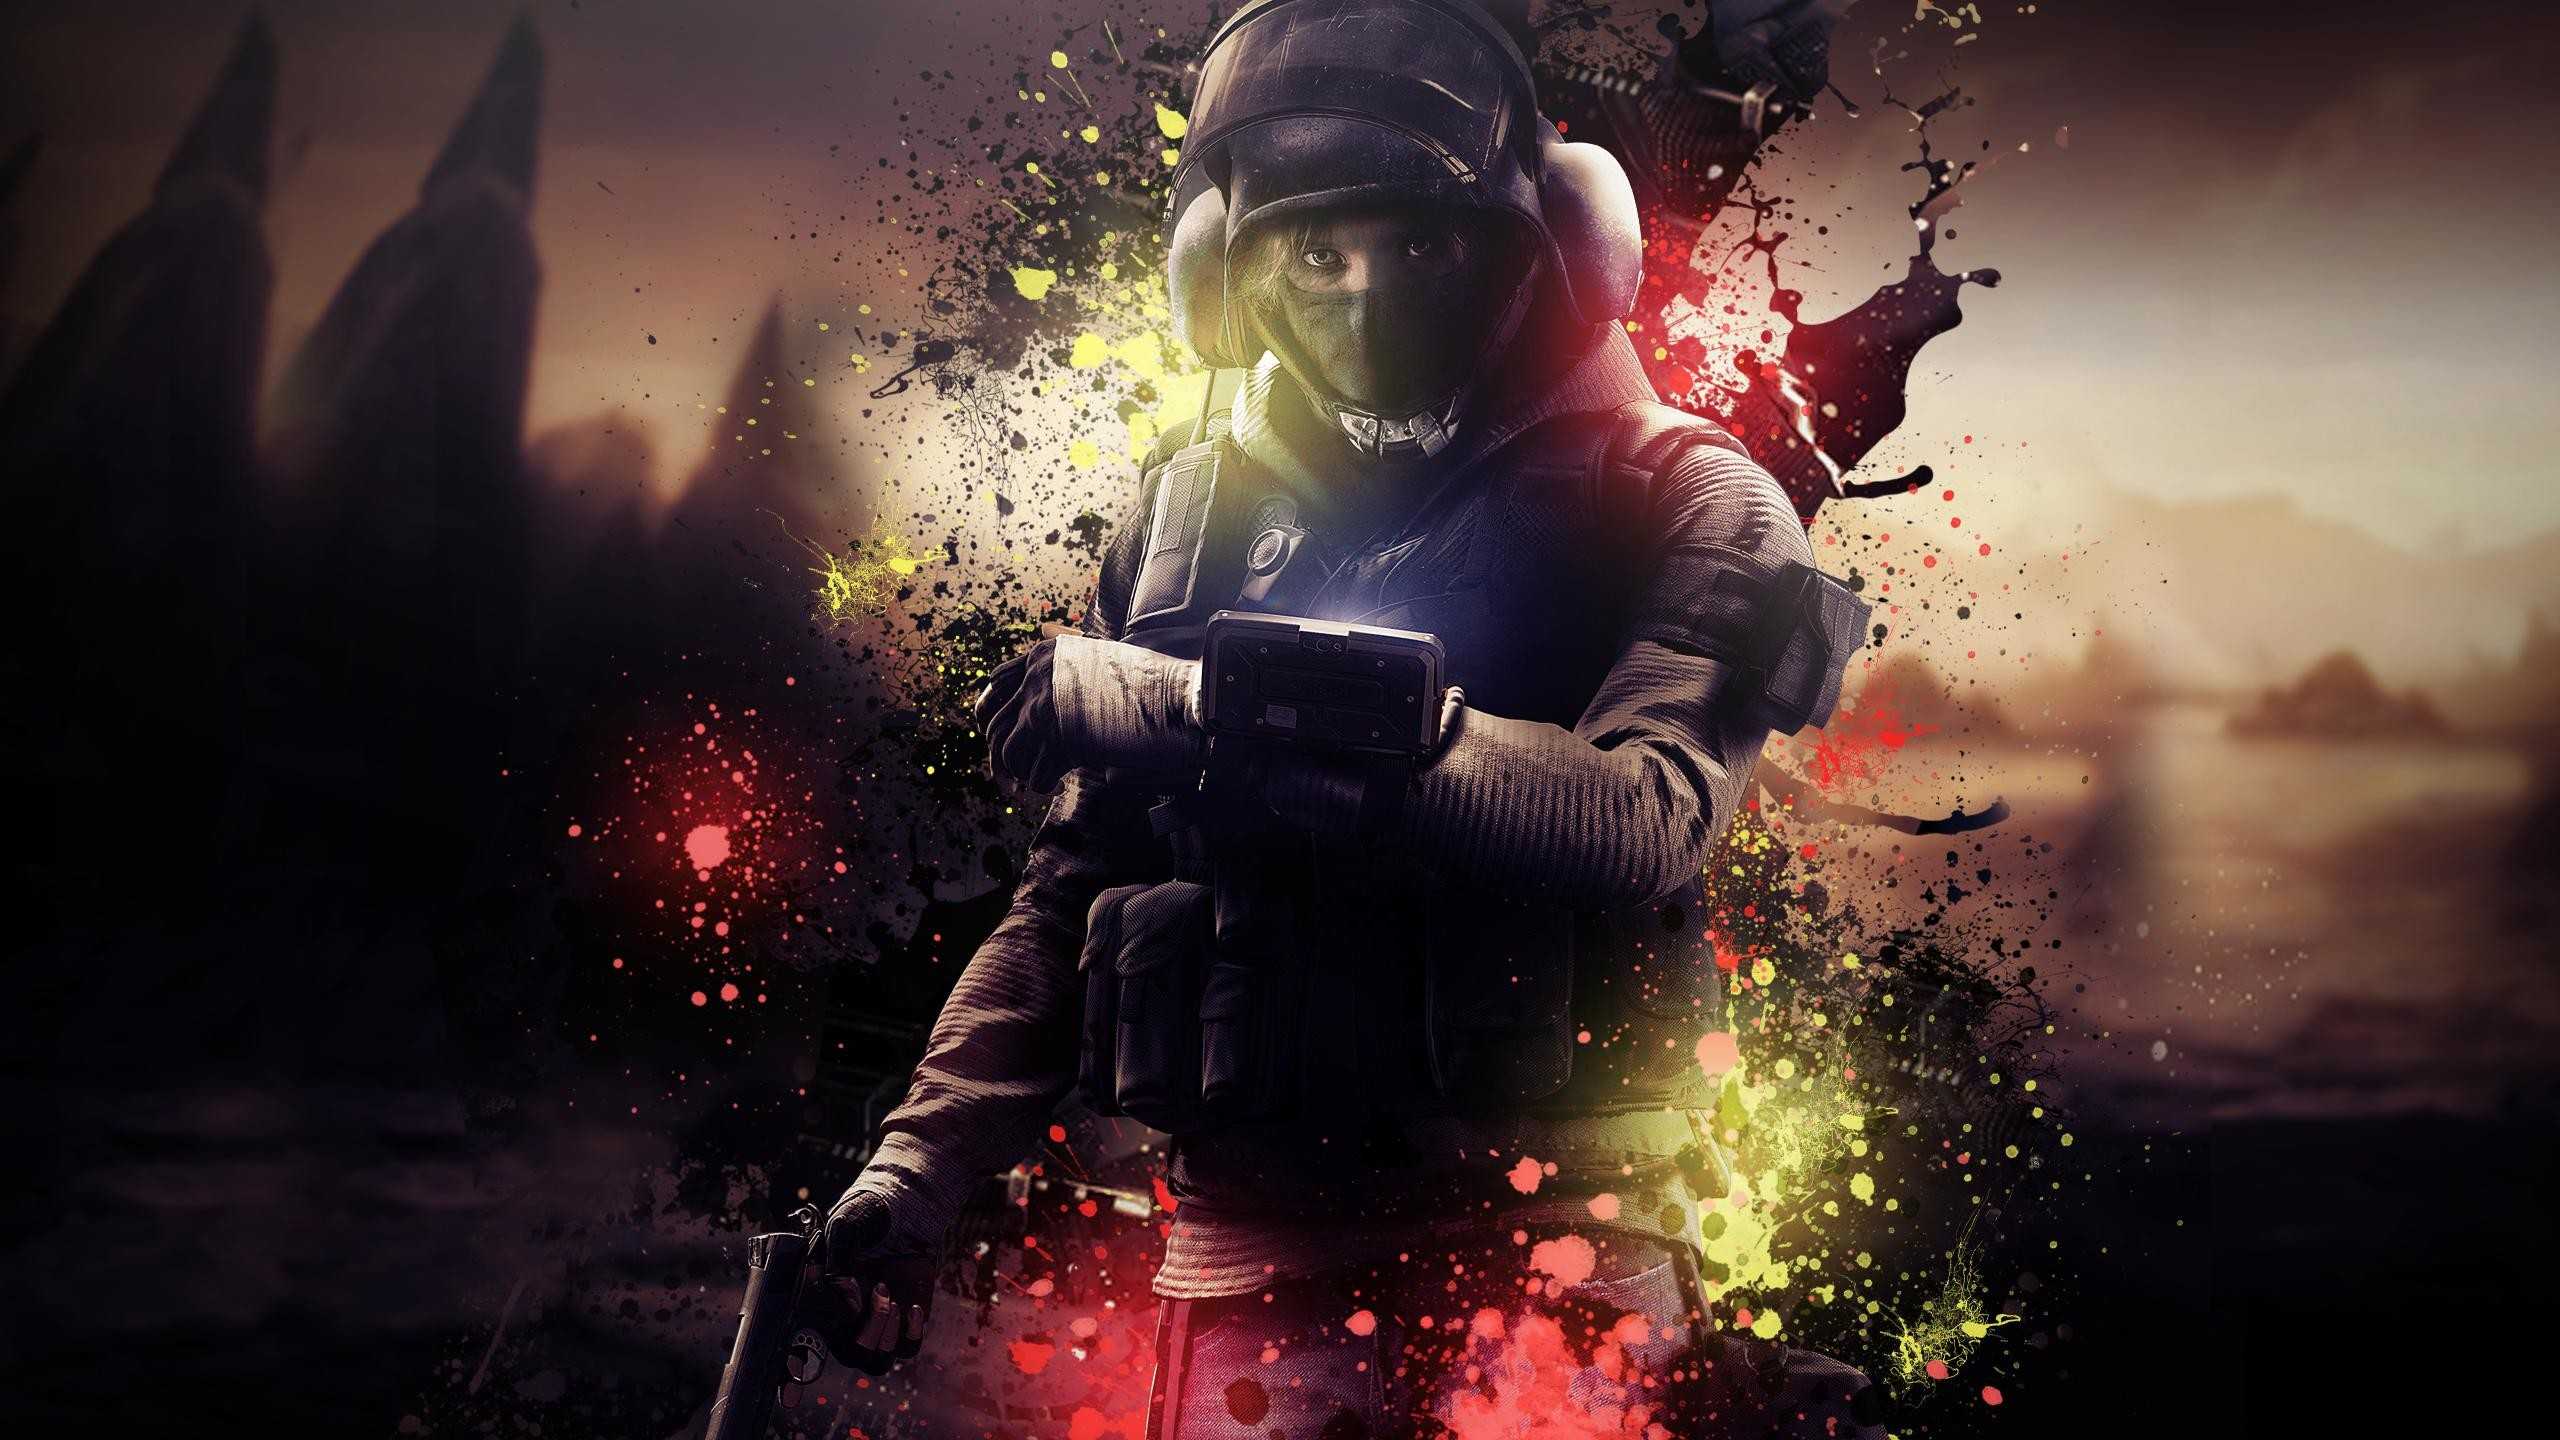 I'm back, with an IQ Wallpaper! : Rainbow6